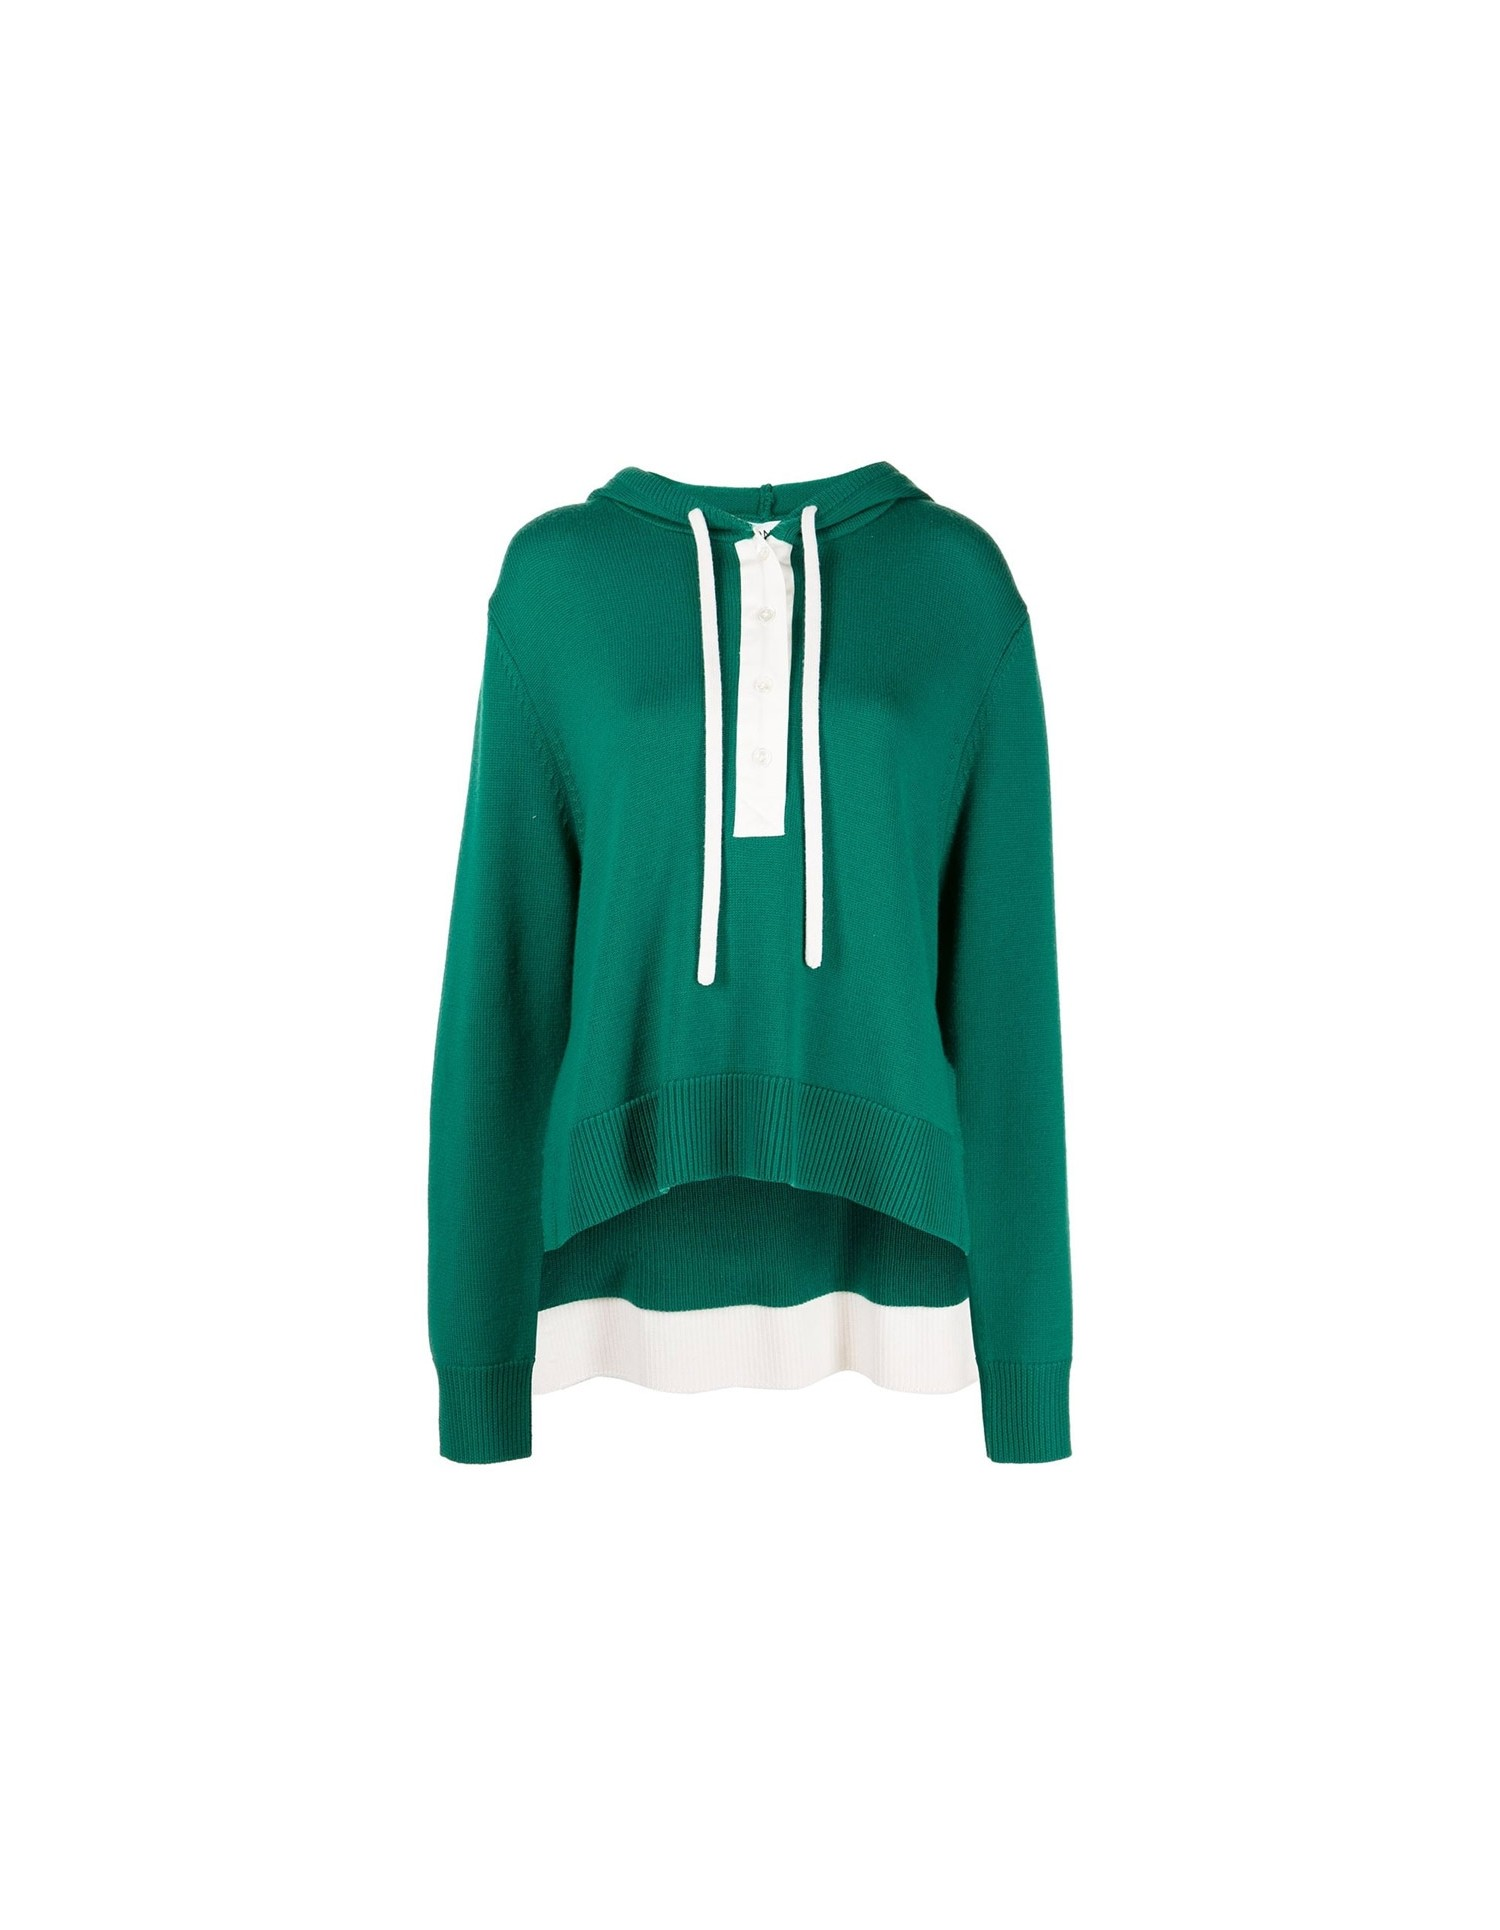 MONSE Rugby Knit Hoodie in Grass and Ivory Flat Front